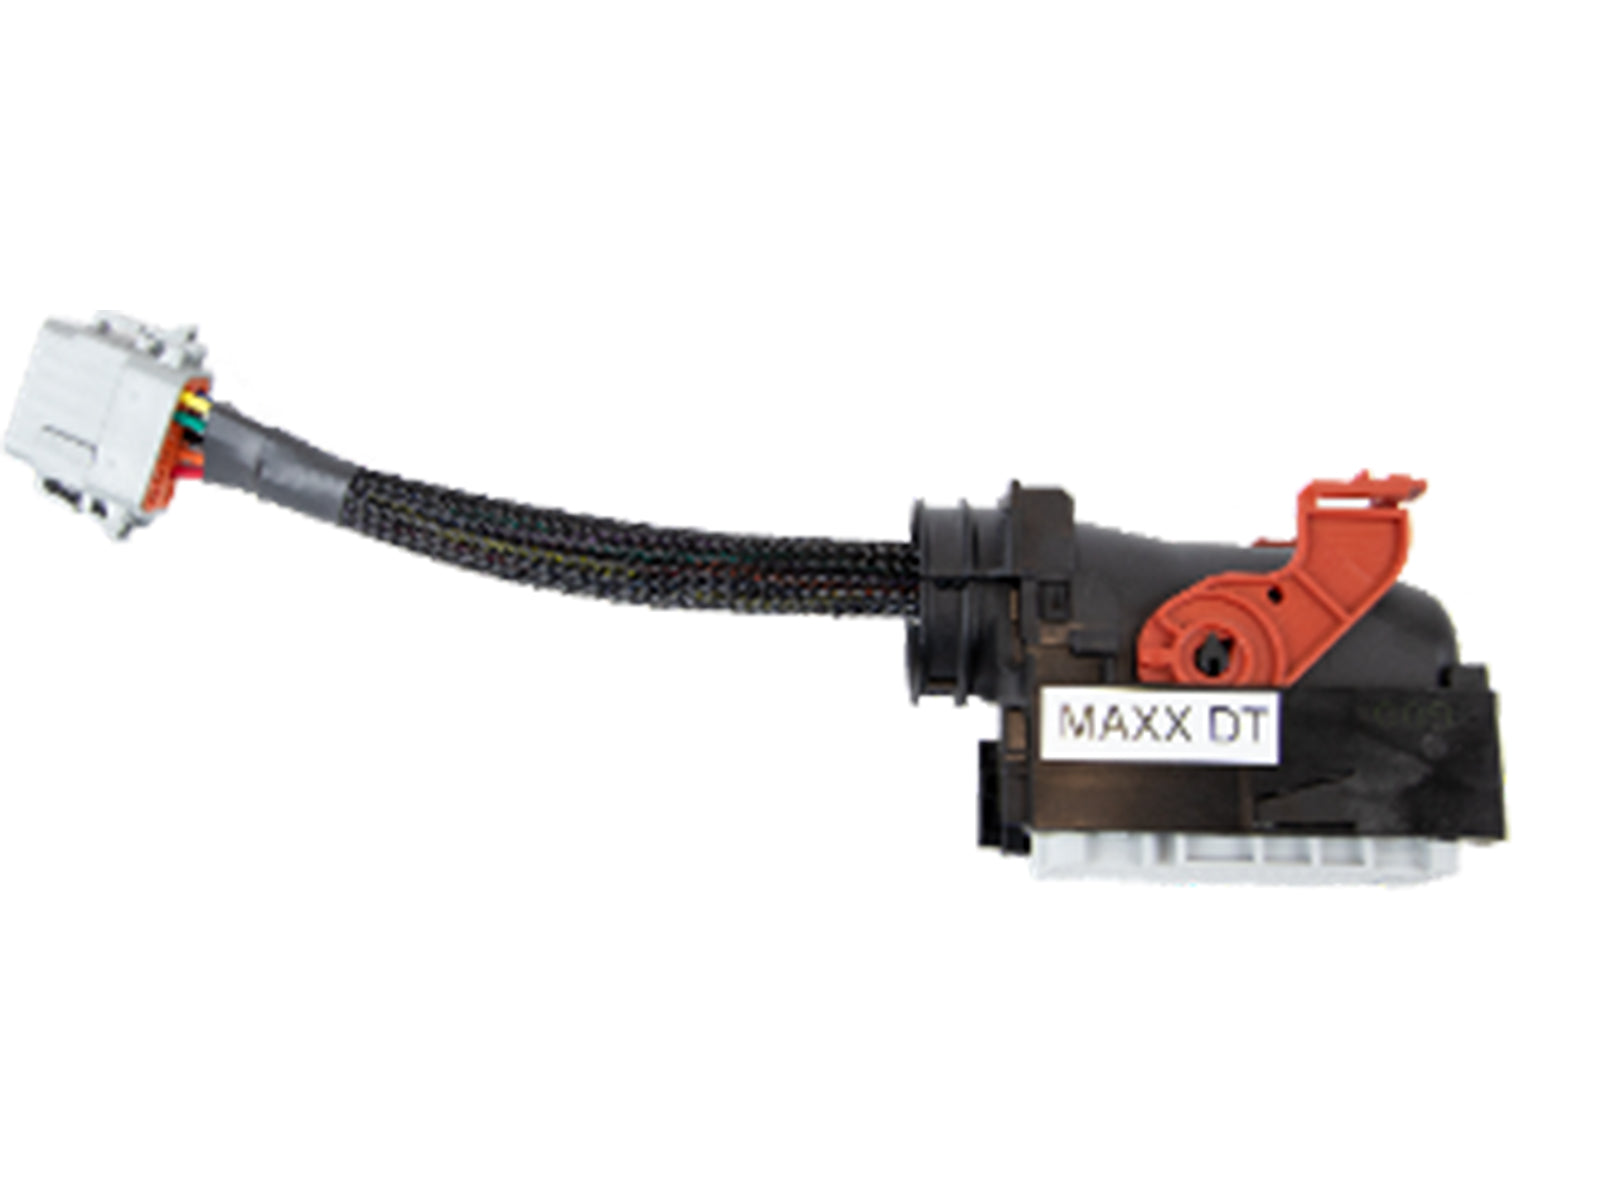 Diesel Laptops Bypass Breakout Cable for International MaxxForce DT 9 10